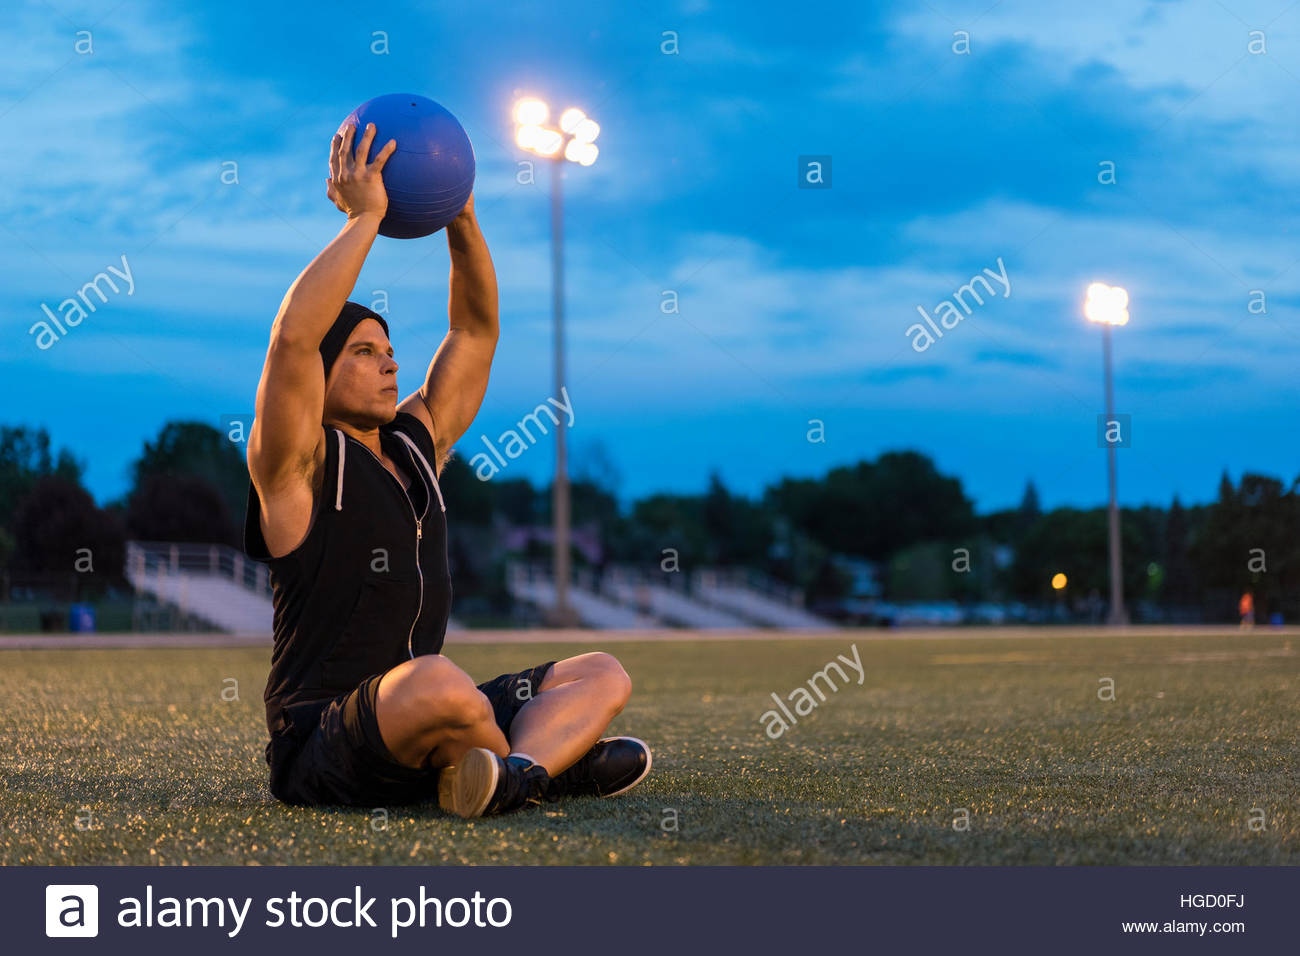 Athletic man using medicine ball during work out at night, Montreal, Quebec, Canada - Stock Image